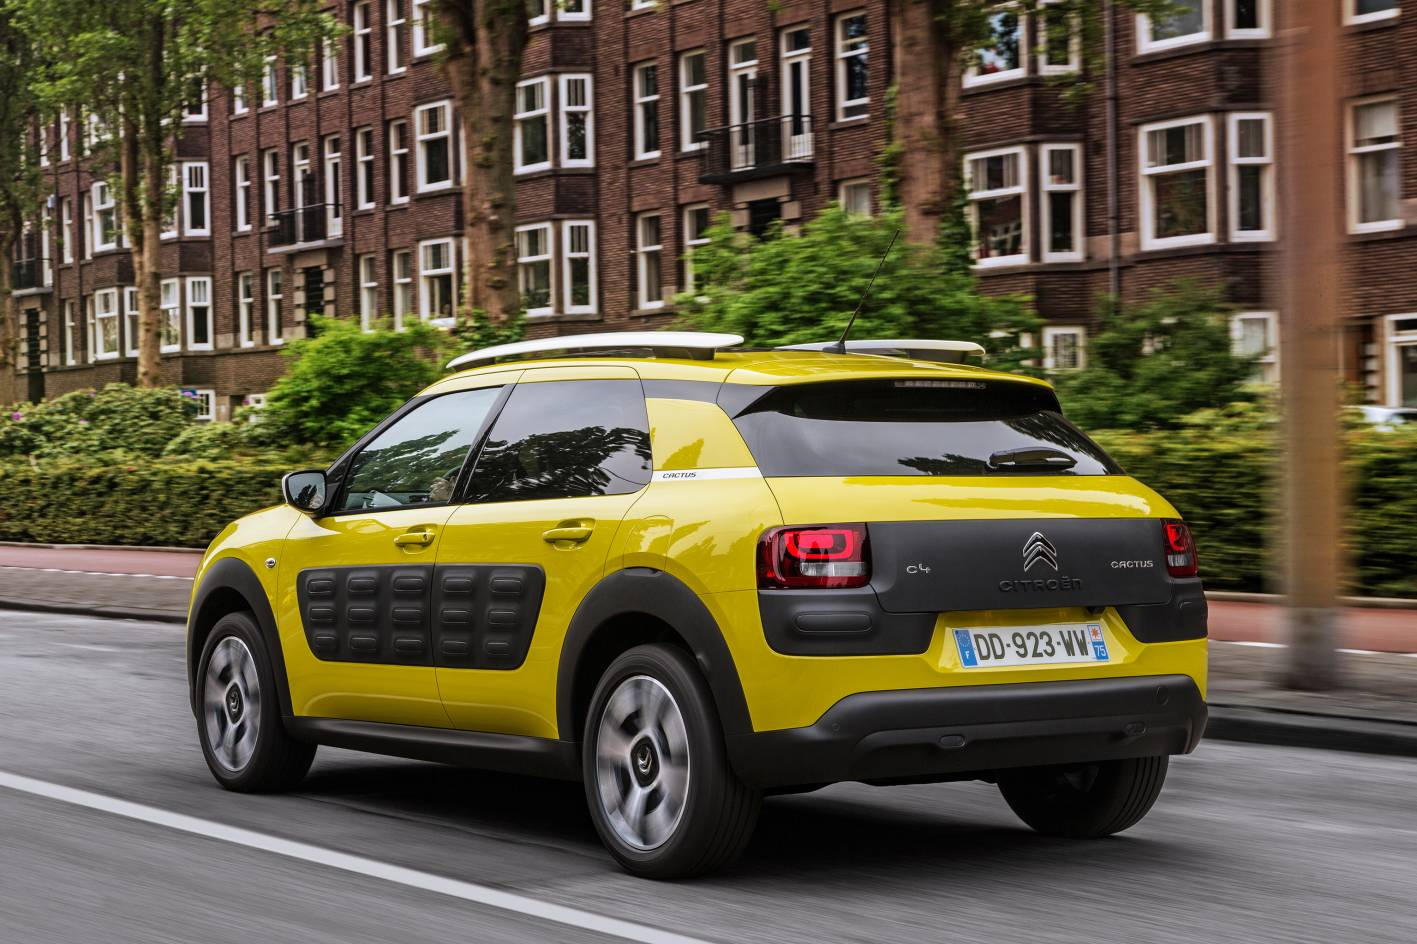 News - Citroen Cactus SUV Price Announced